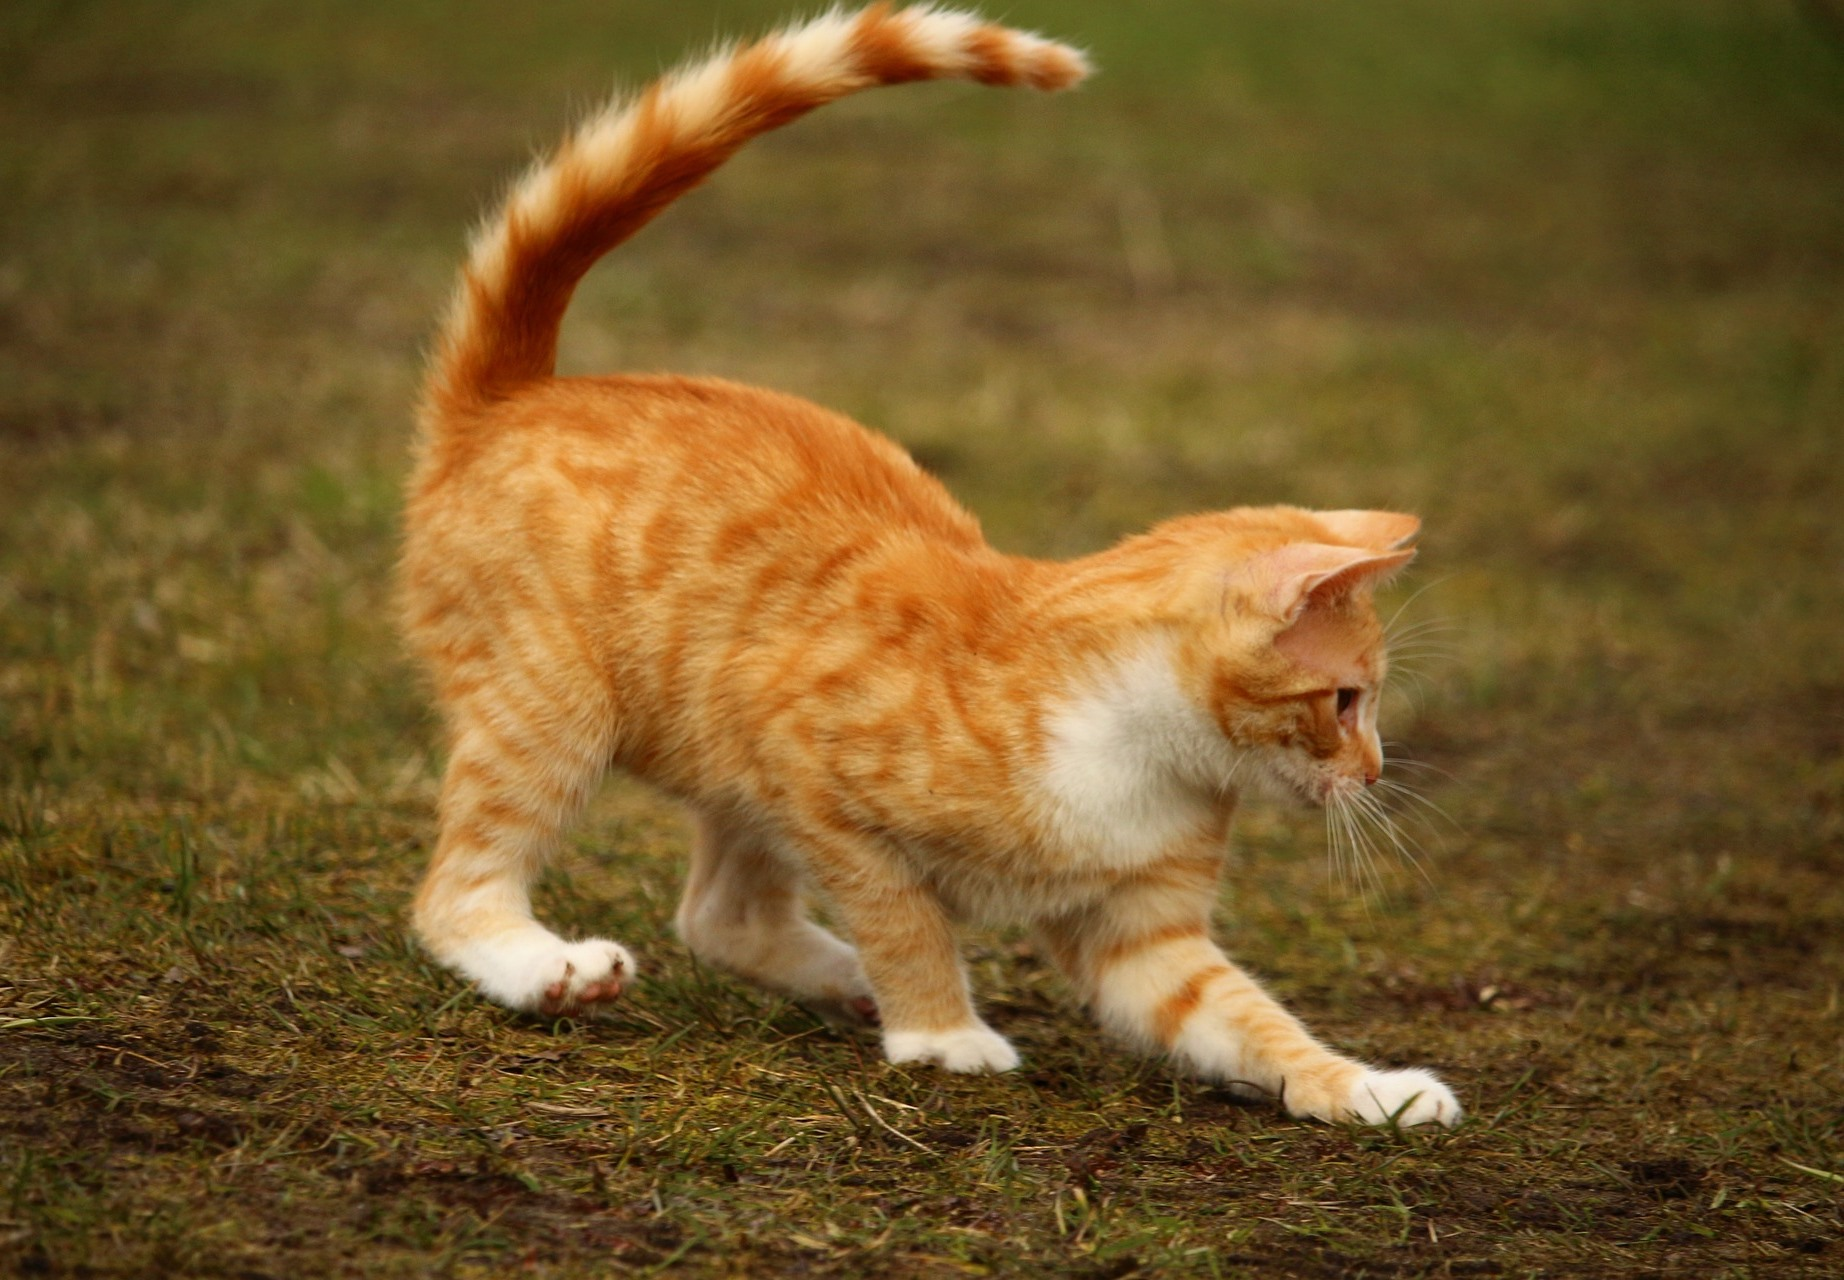 Can a Cat's Tail Be Double-Jointed?